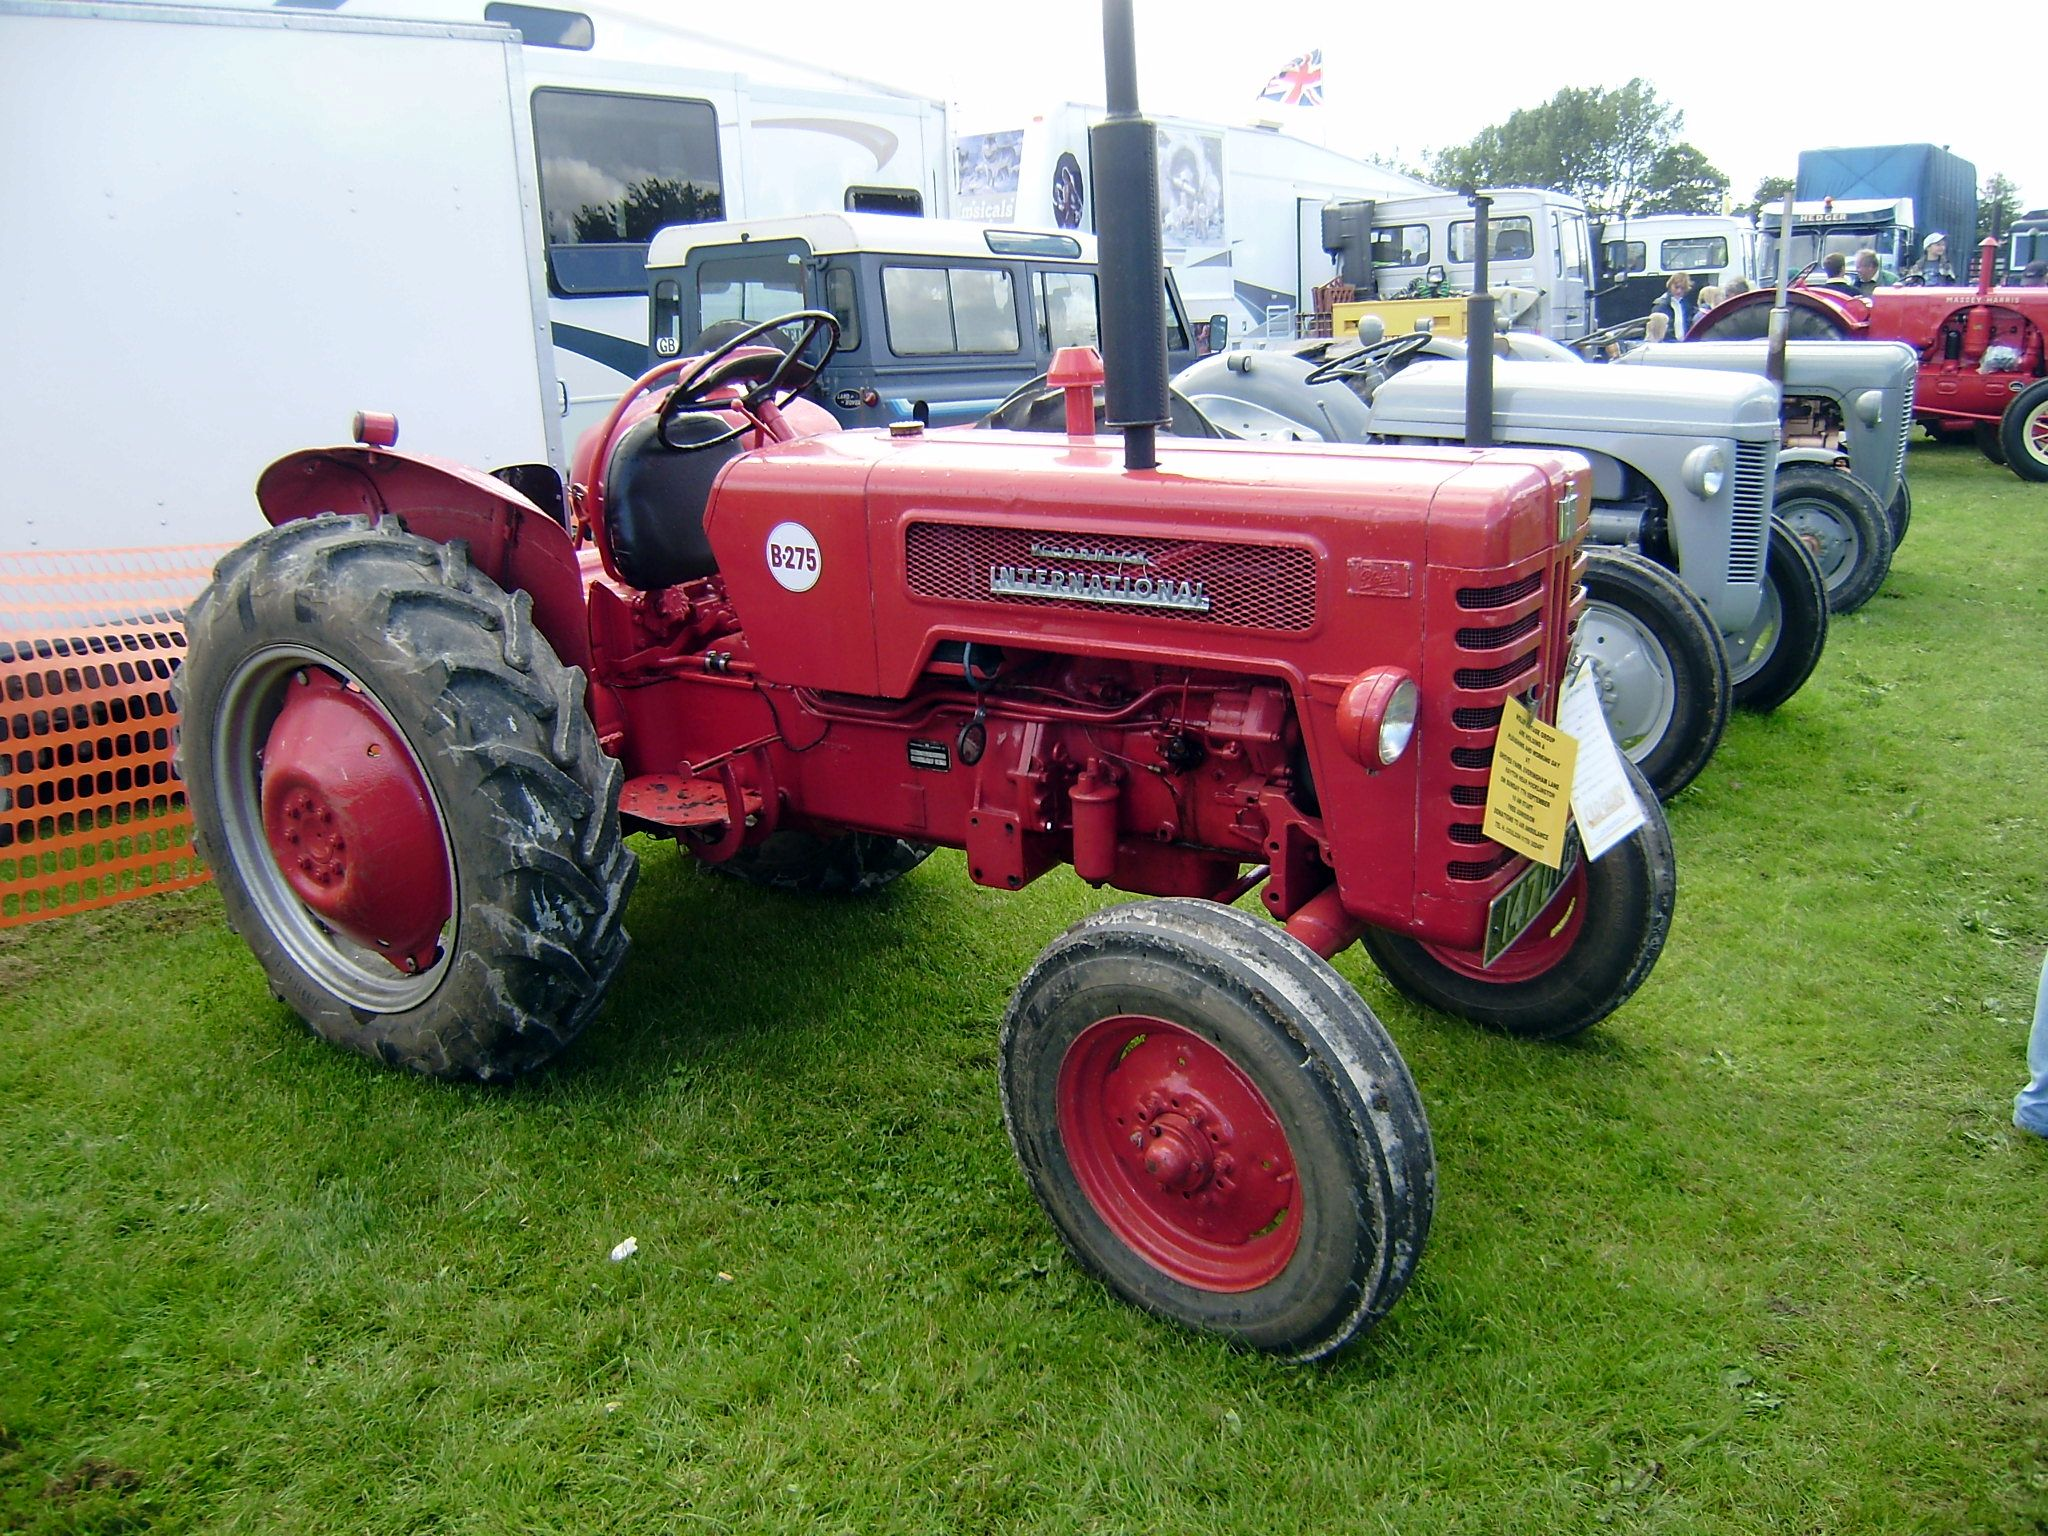 624 International tractor - Google Search | Tractors made in Germany |  Pinterest | International tractors, Tractors and International harvester